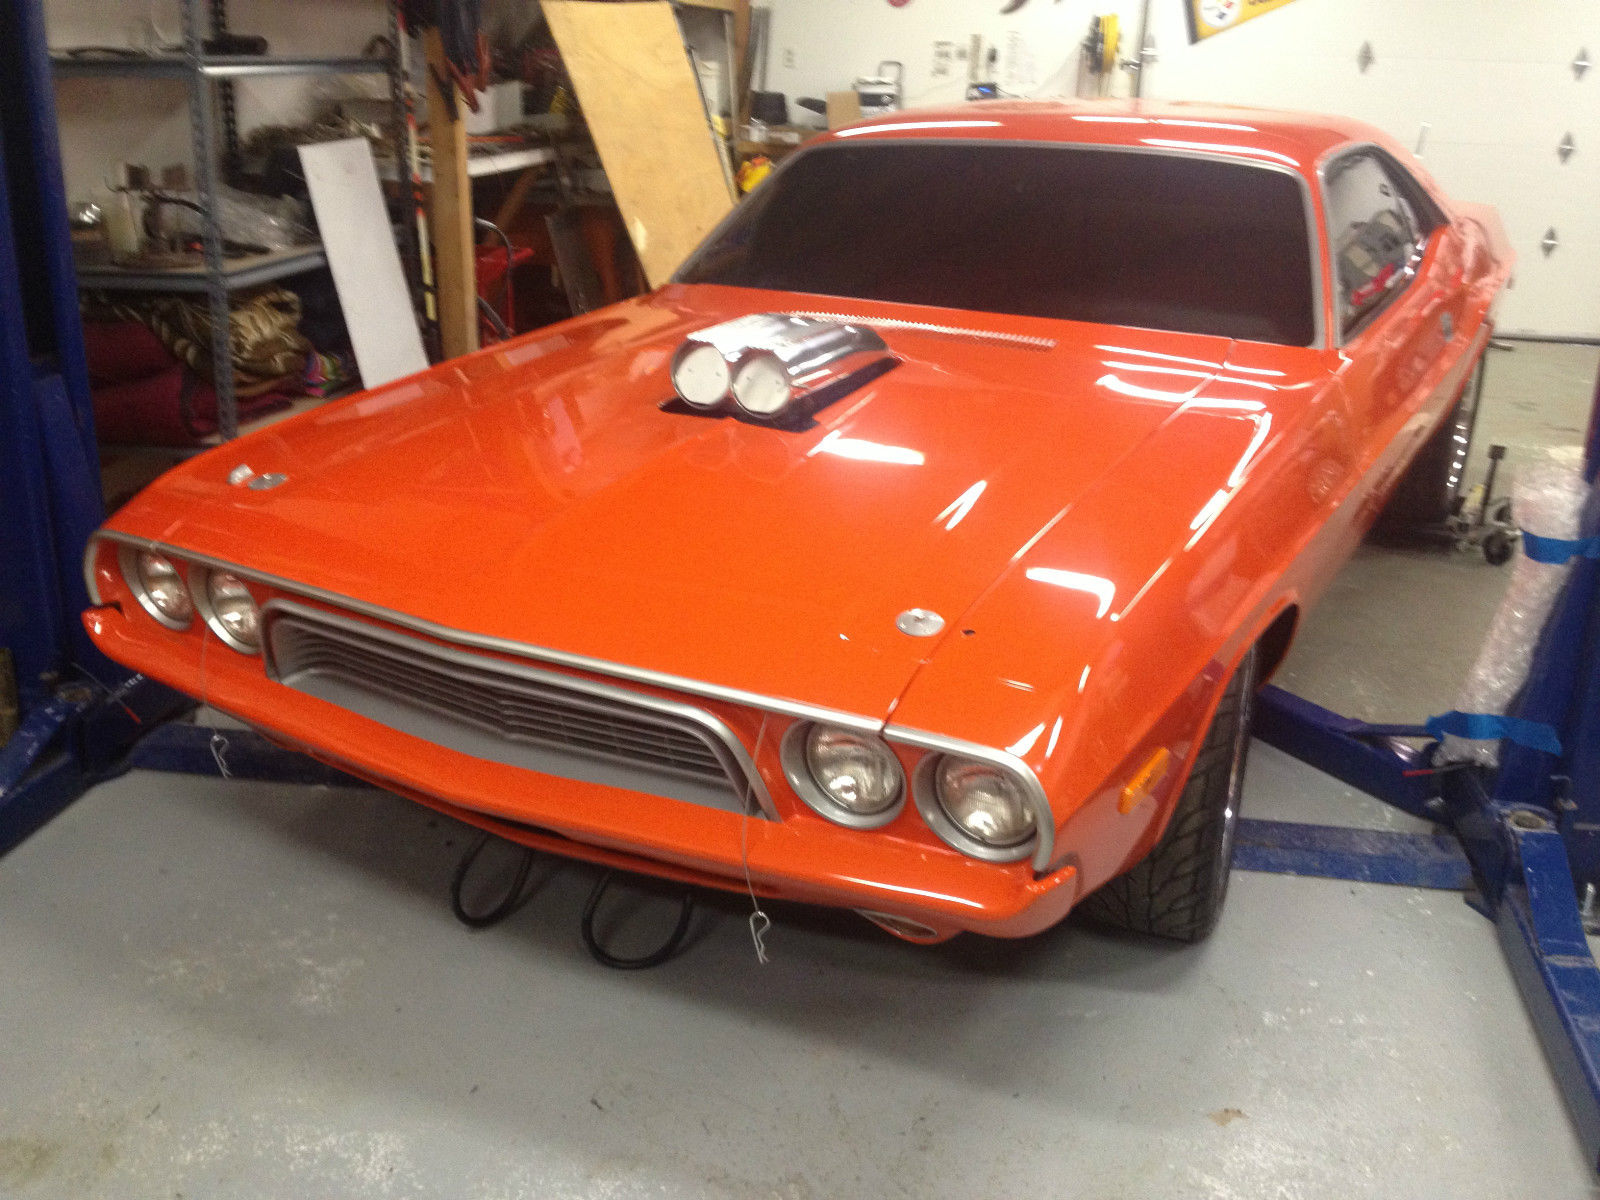 SHOW 1973 Dodge Challanger 512 stroker 588 hp - Classic Dodge Challenger 1973 for sale